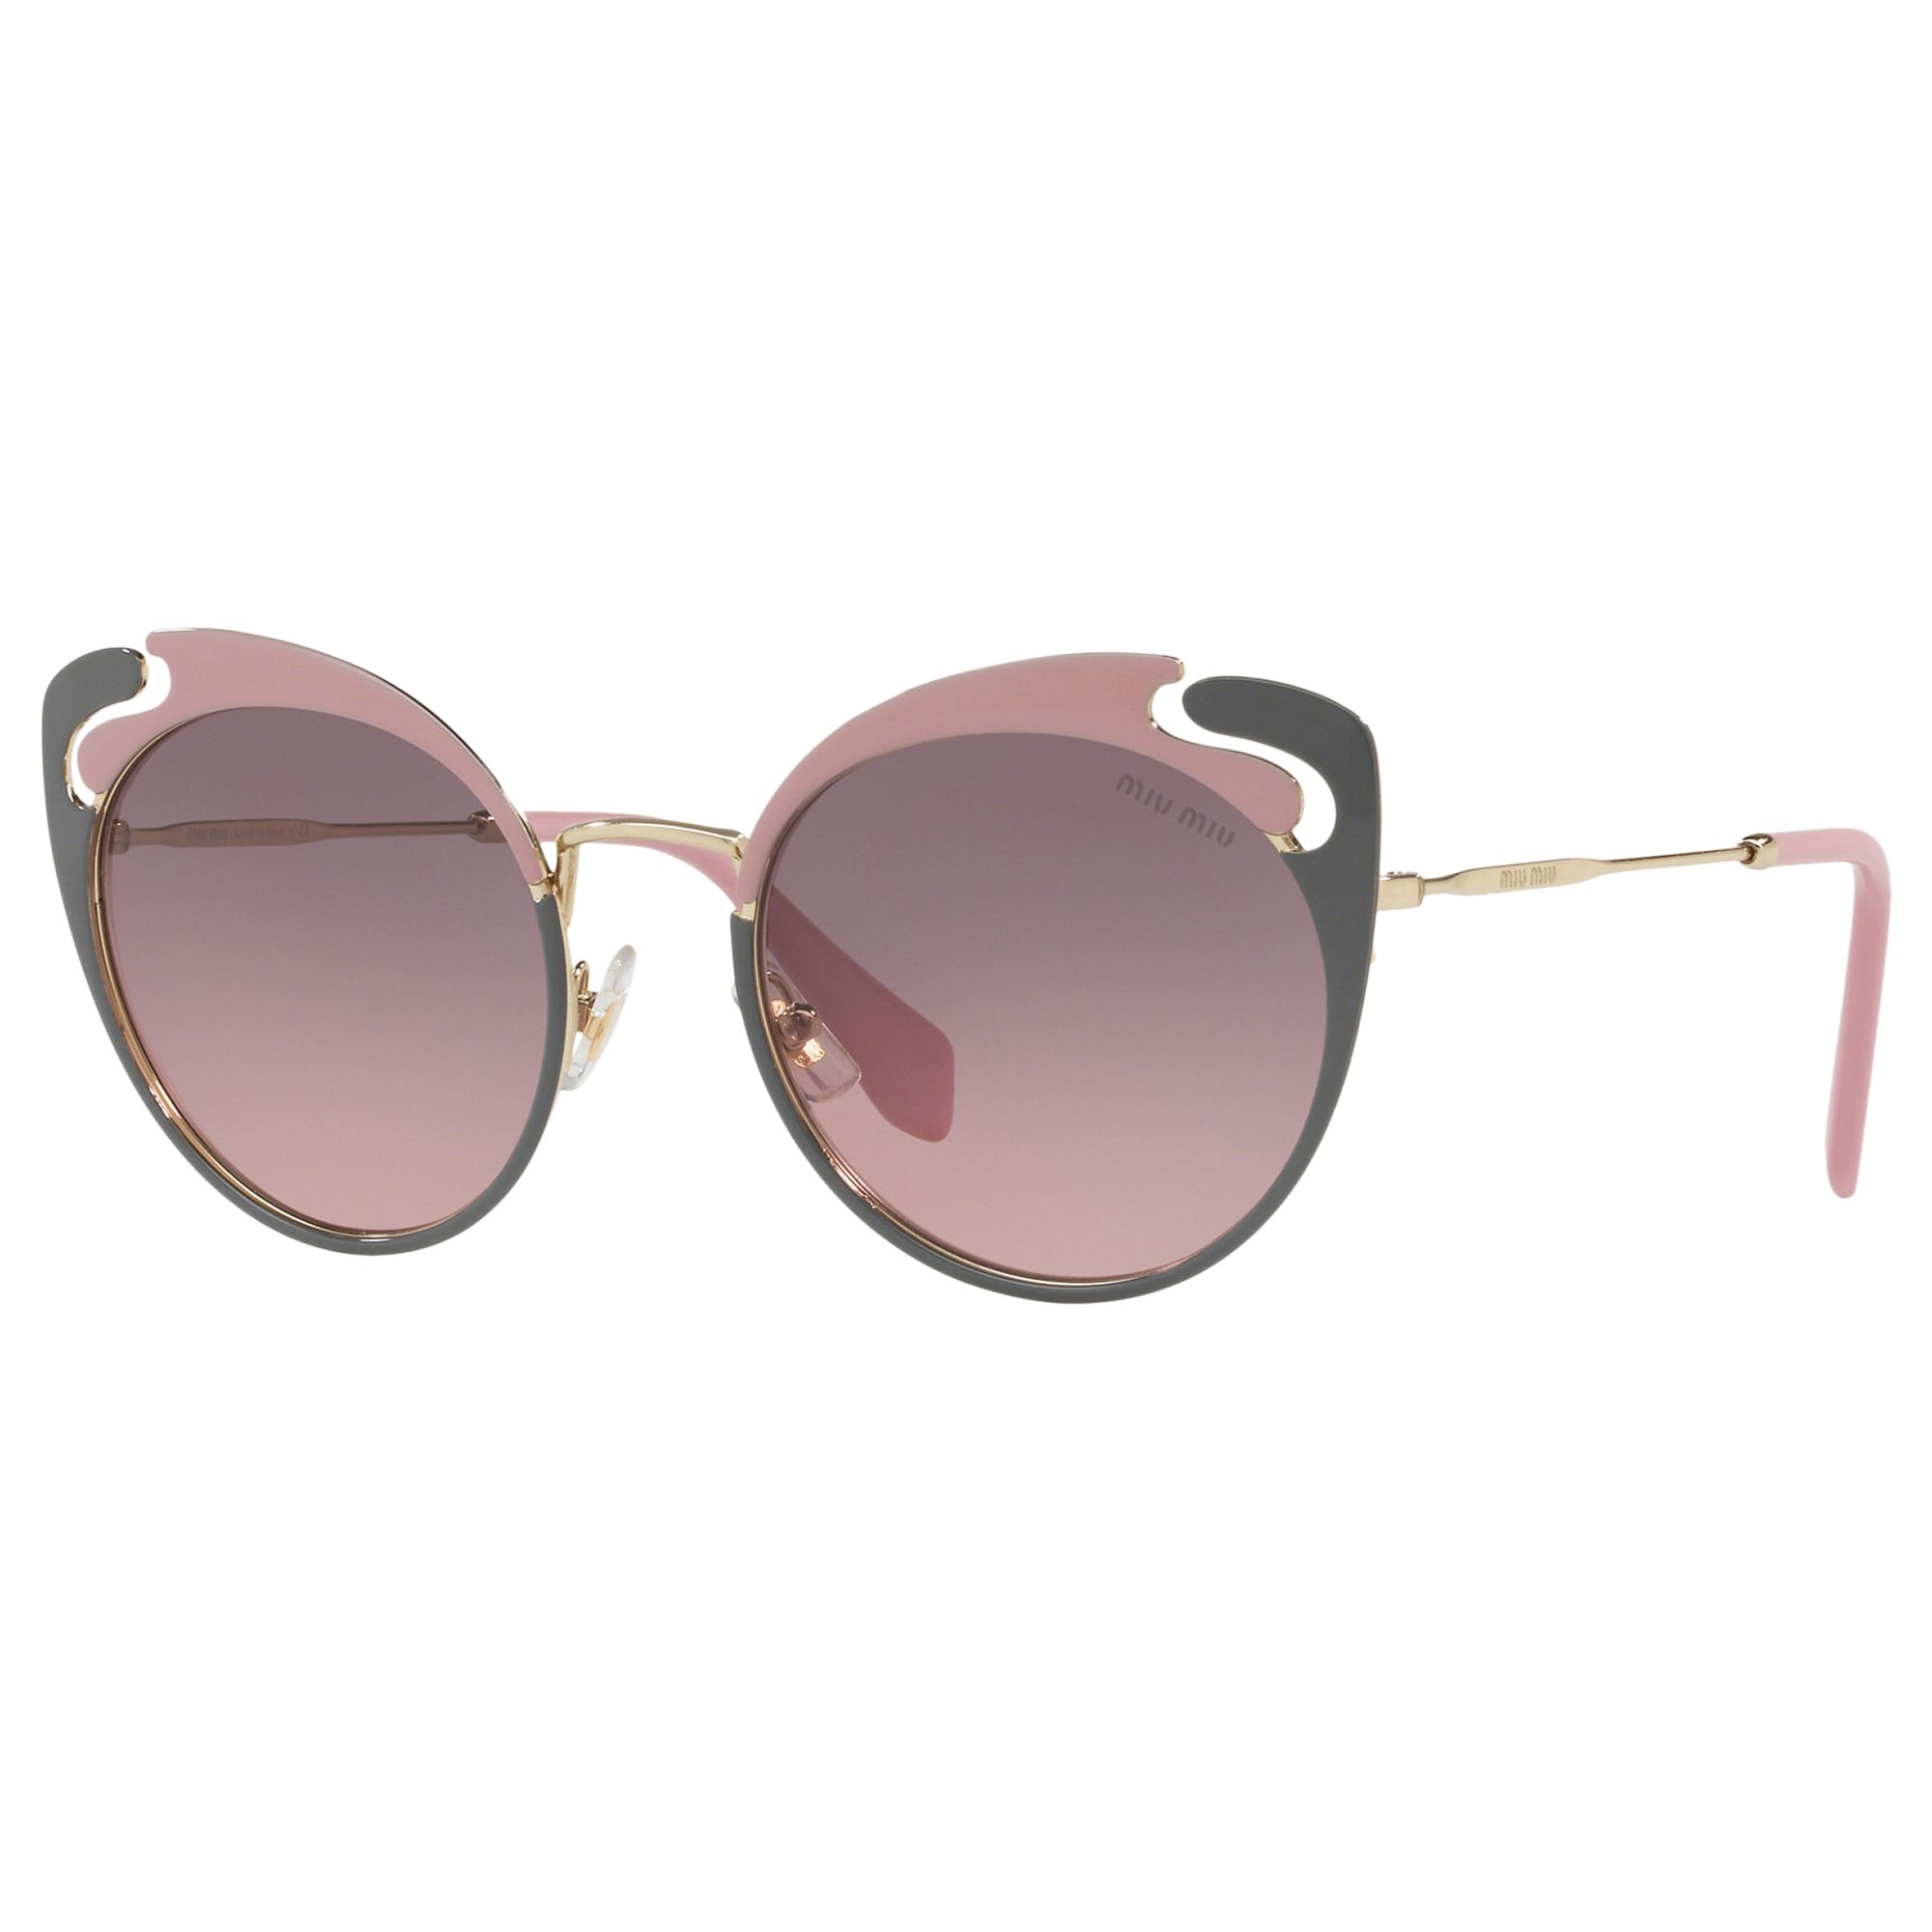 Miu Miu Miu Miu MU 57TS Women's Cat's Eye Sunglasses, Gold/Pink Gradient